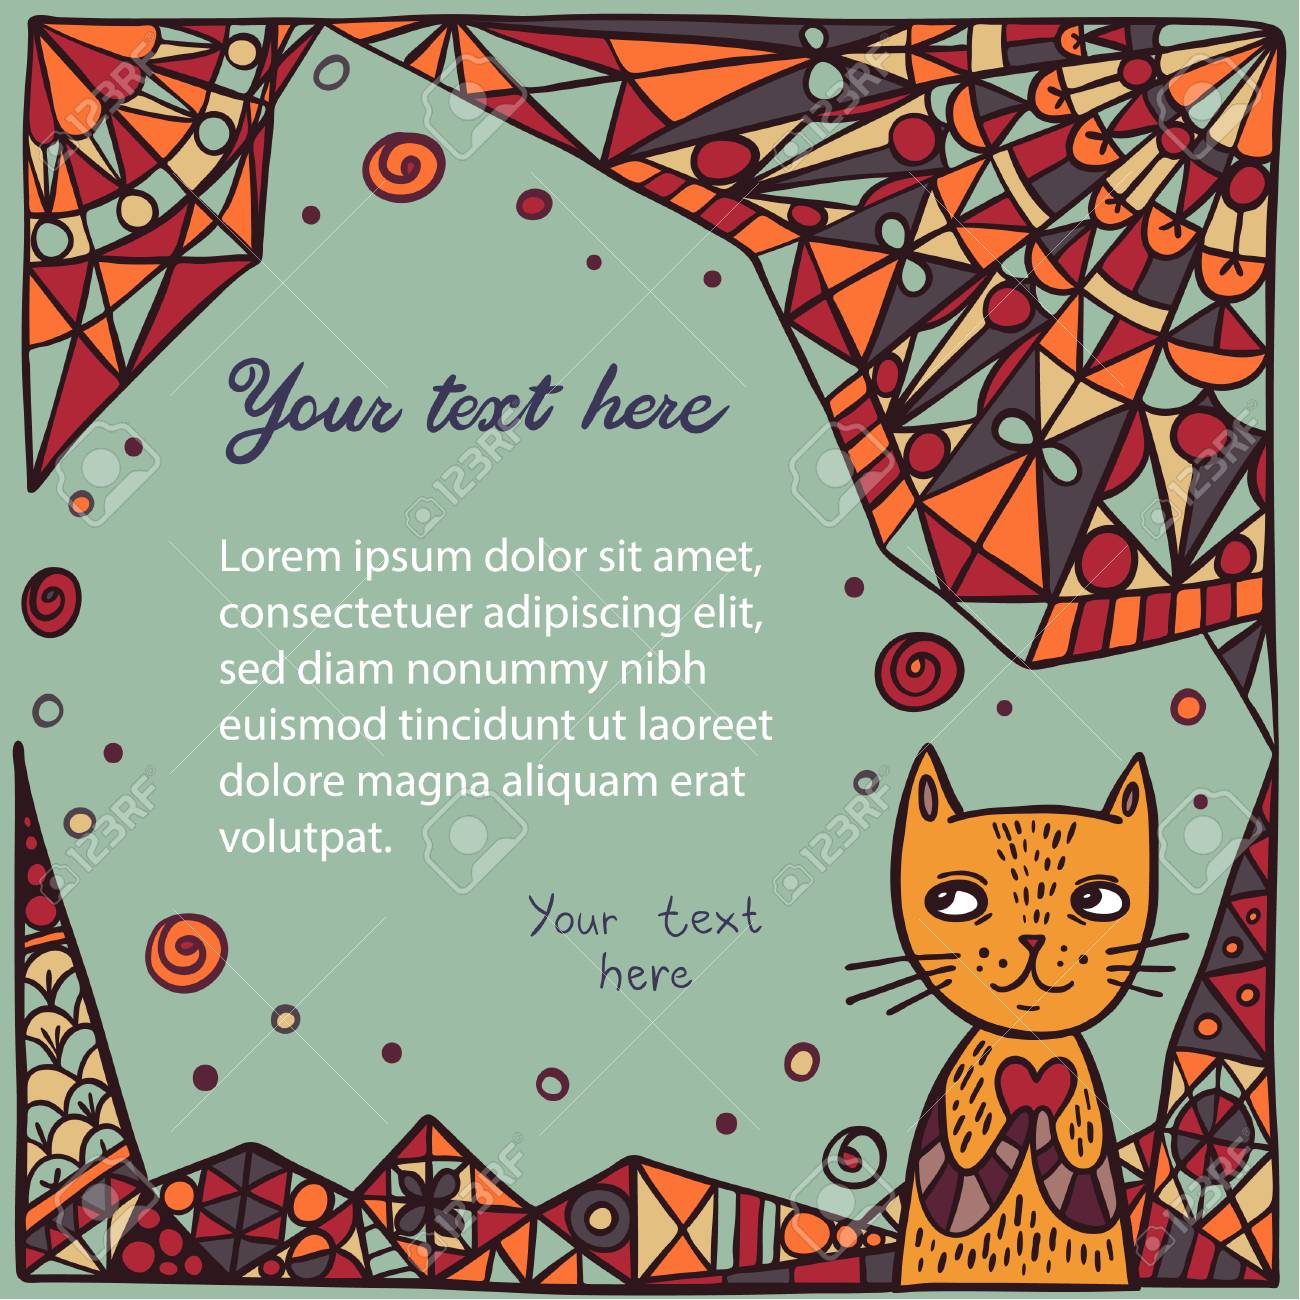 cute cat on abstract background. children's book page template